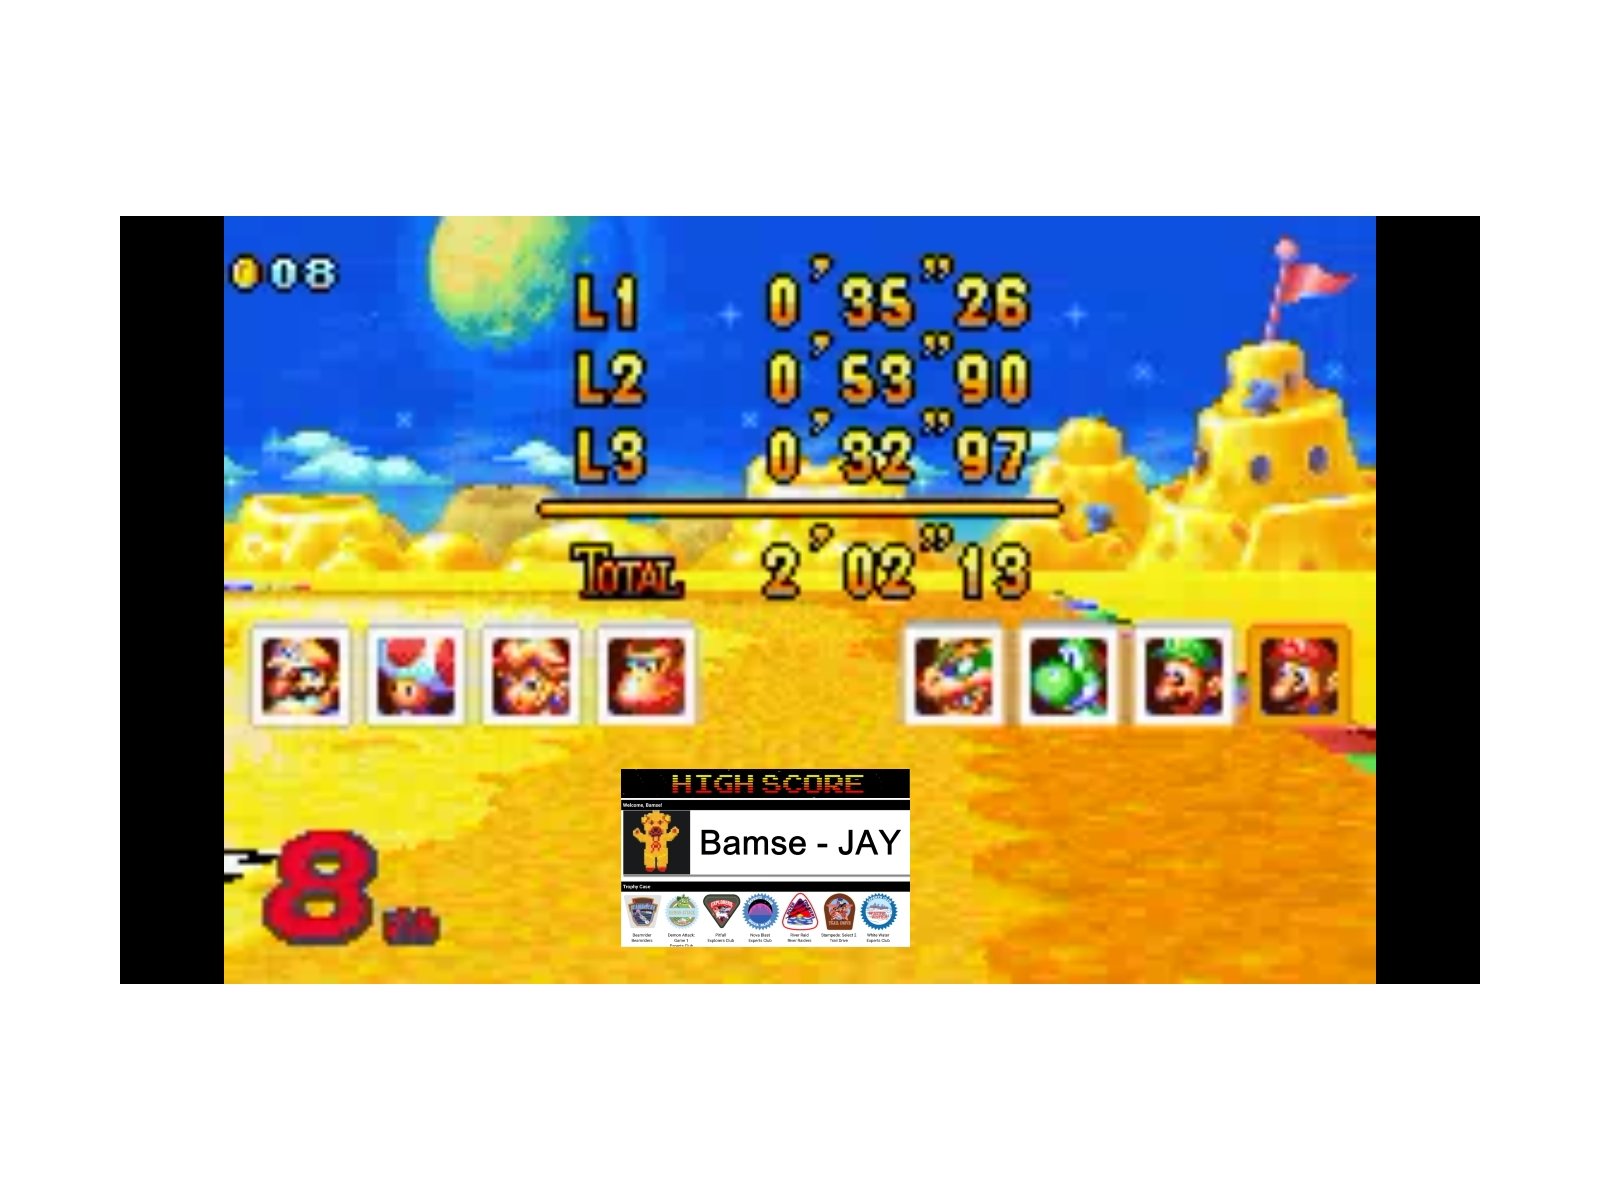 Bamse: Mario Kart Super Circuit: Cheese Land [150cc] (GBA Emulated) 0:02:02.13 points on 2019-12-17 13:34:55